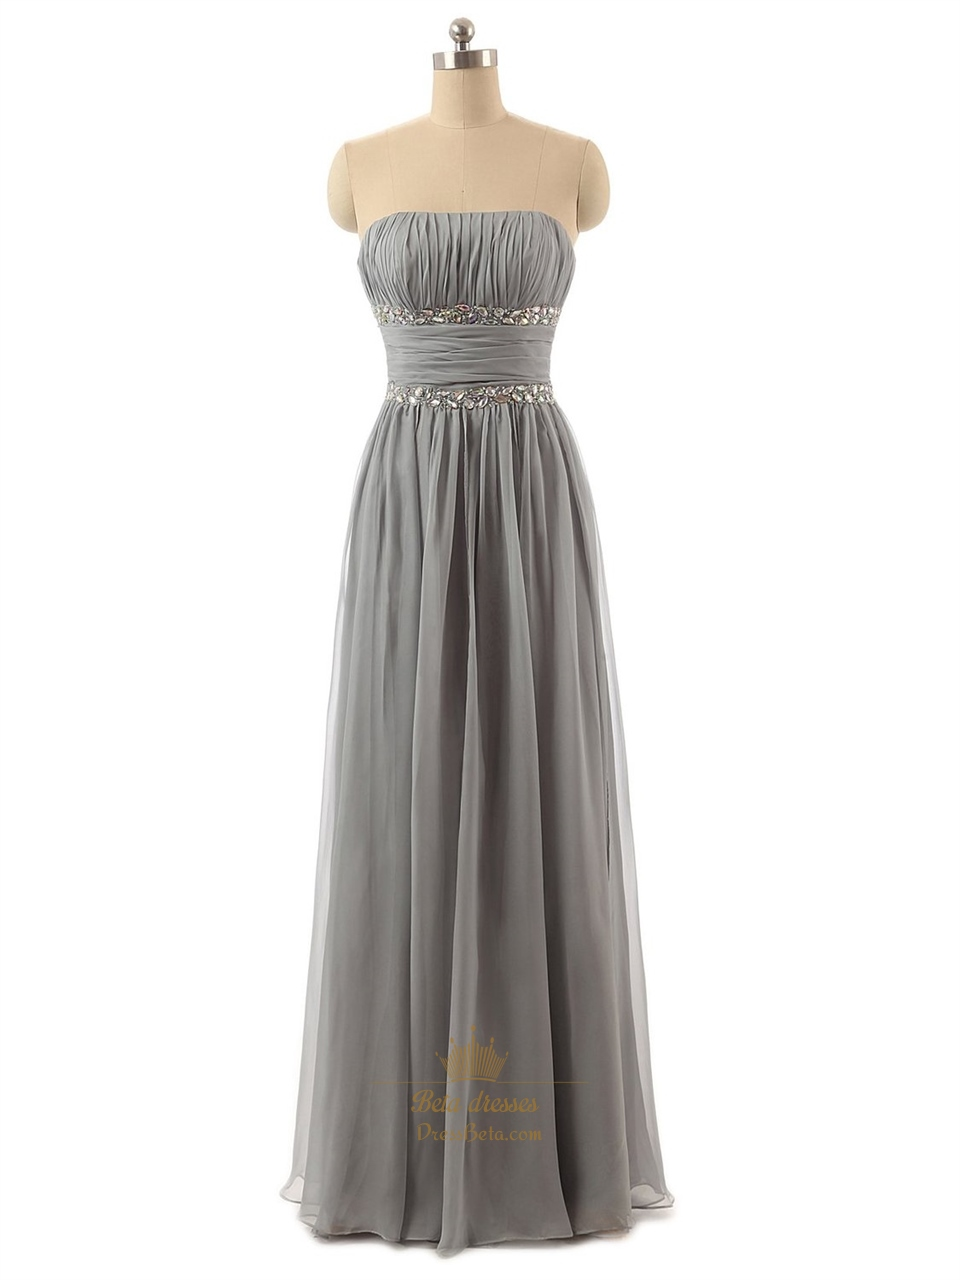 Grey Strapless Chiffon Ruched Bodice Bridesmaid Dress With